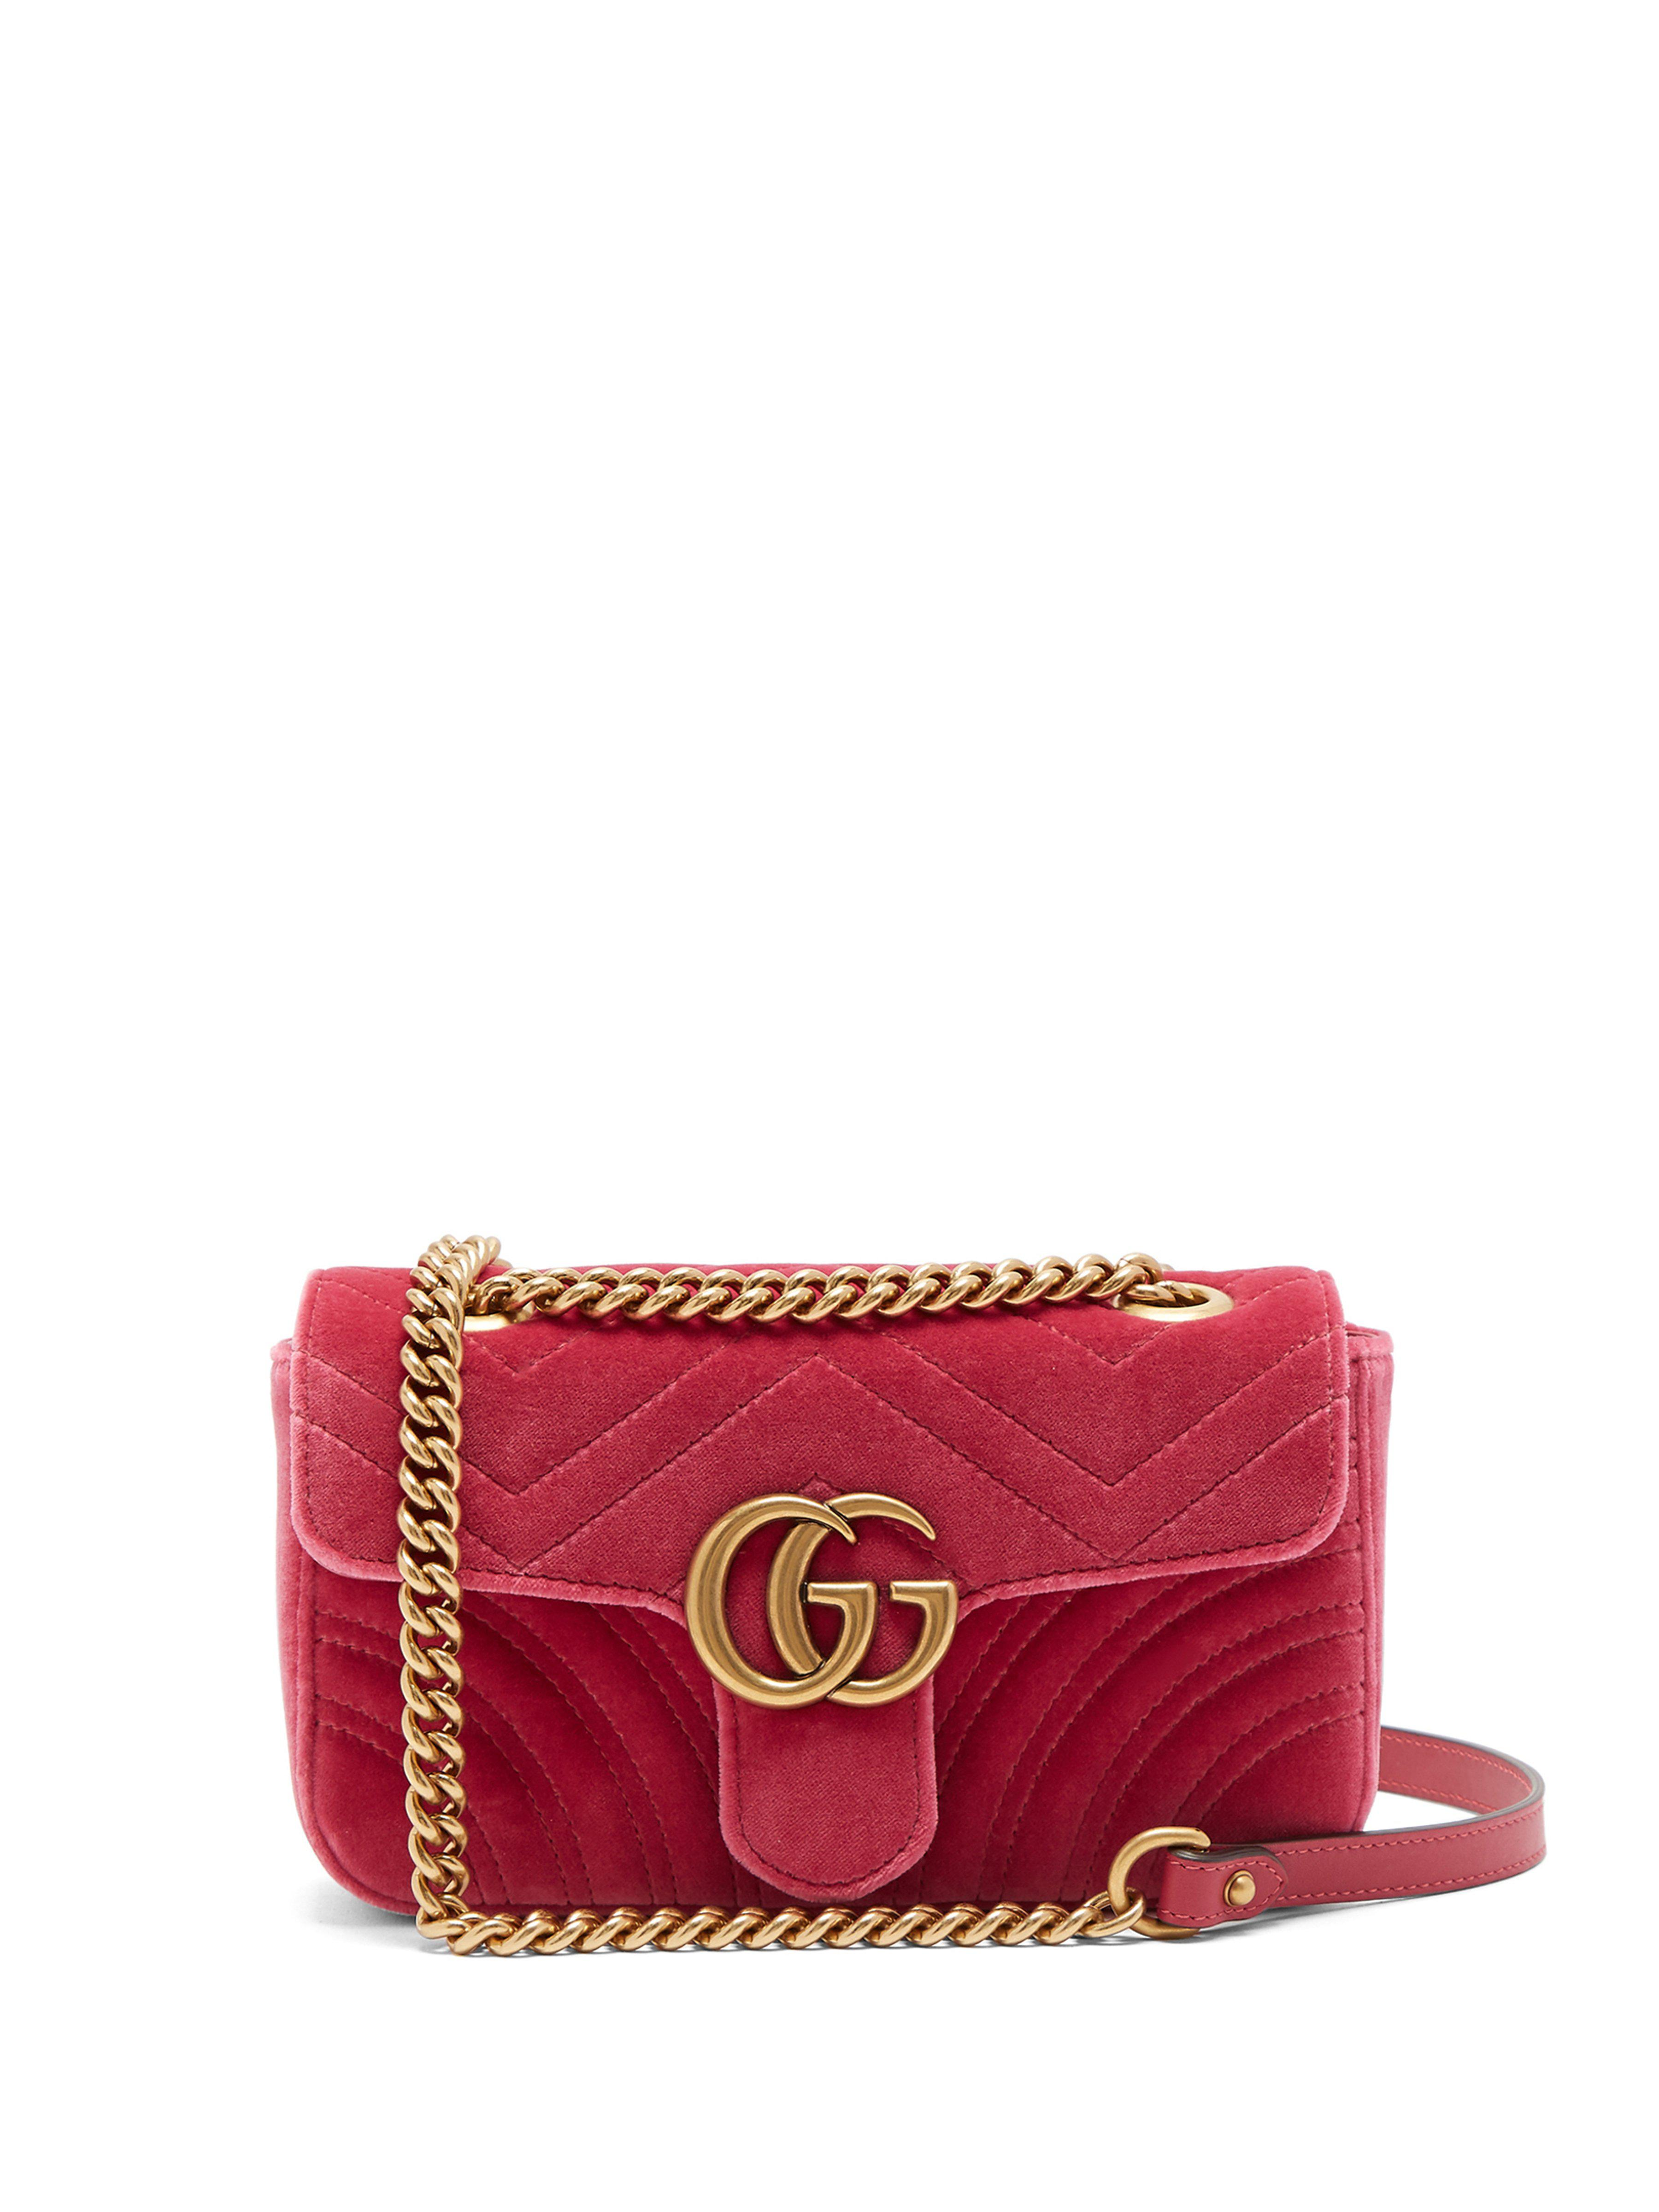 075fd7e98c9a Gucci Gg Marmont Mini Quilted Velvet Cross Body Bag in Pink - Save ...